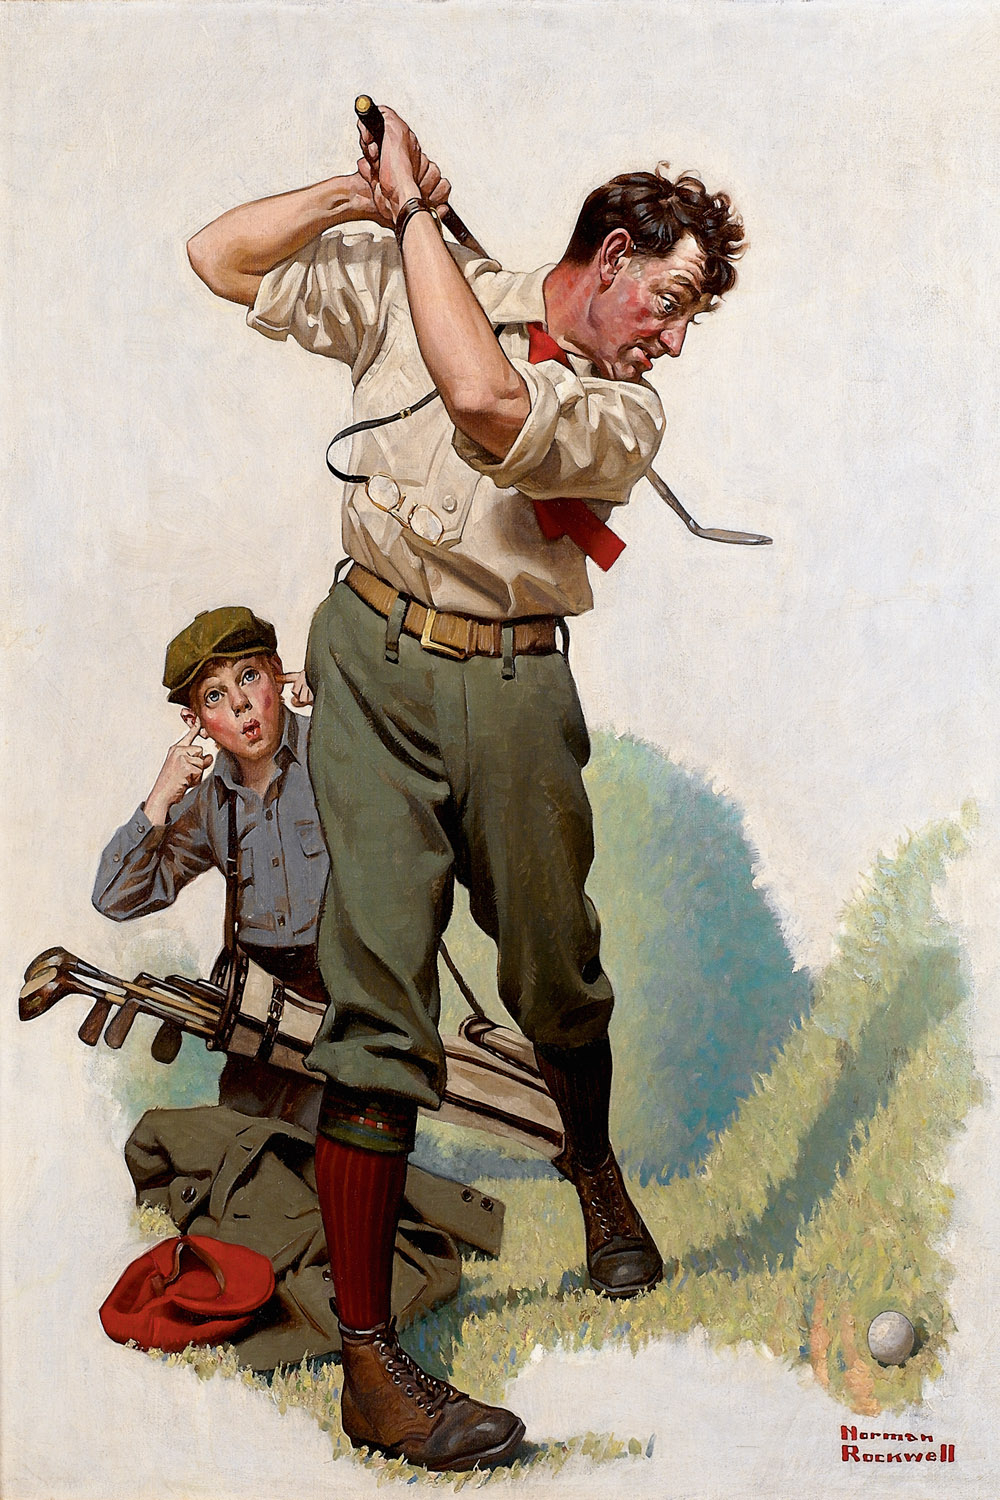 a man about to swing his club at a golf ball with a boy behind him plugging his ears